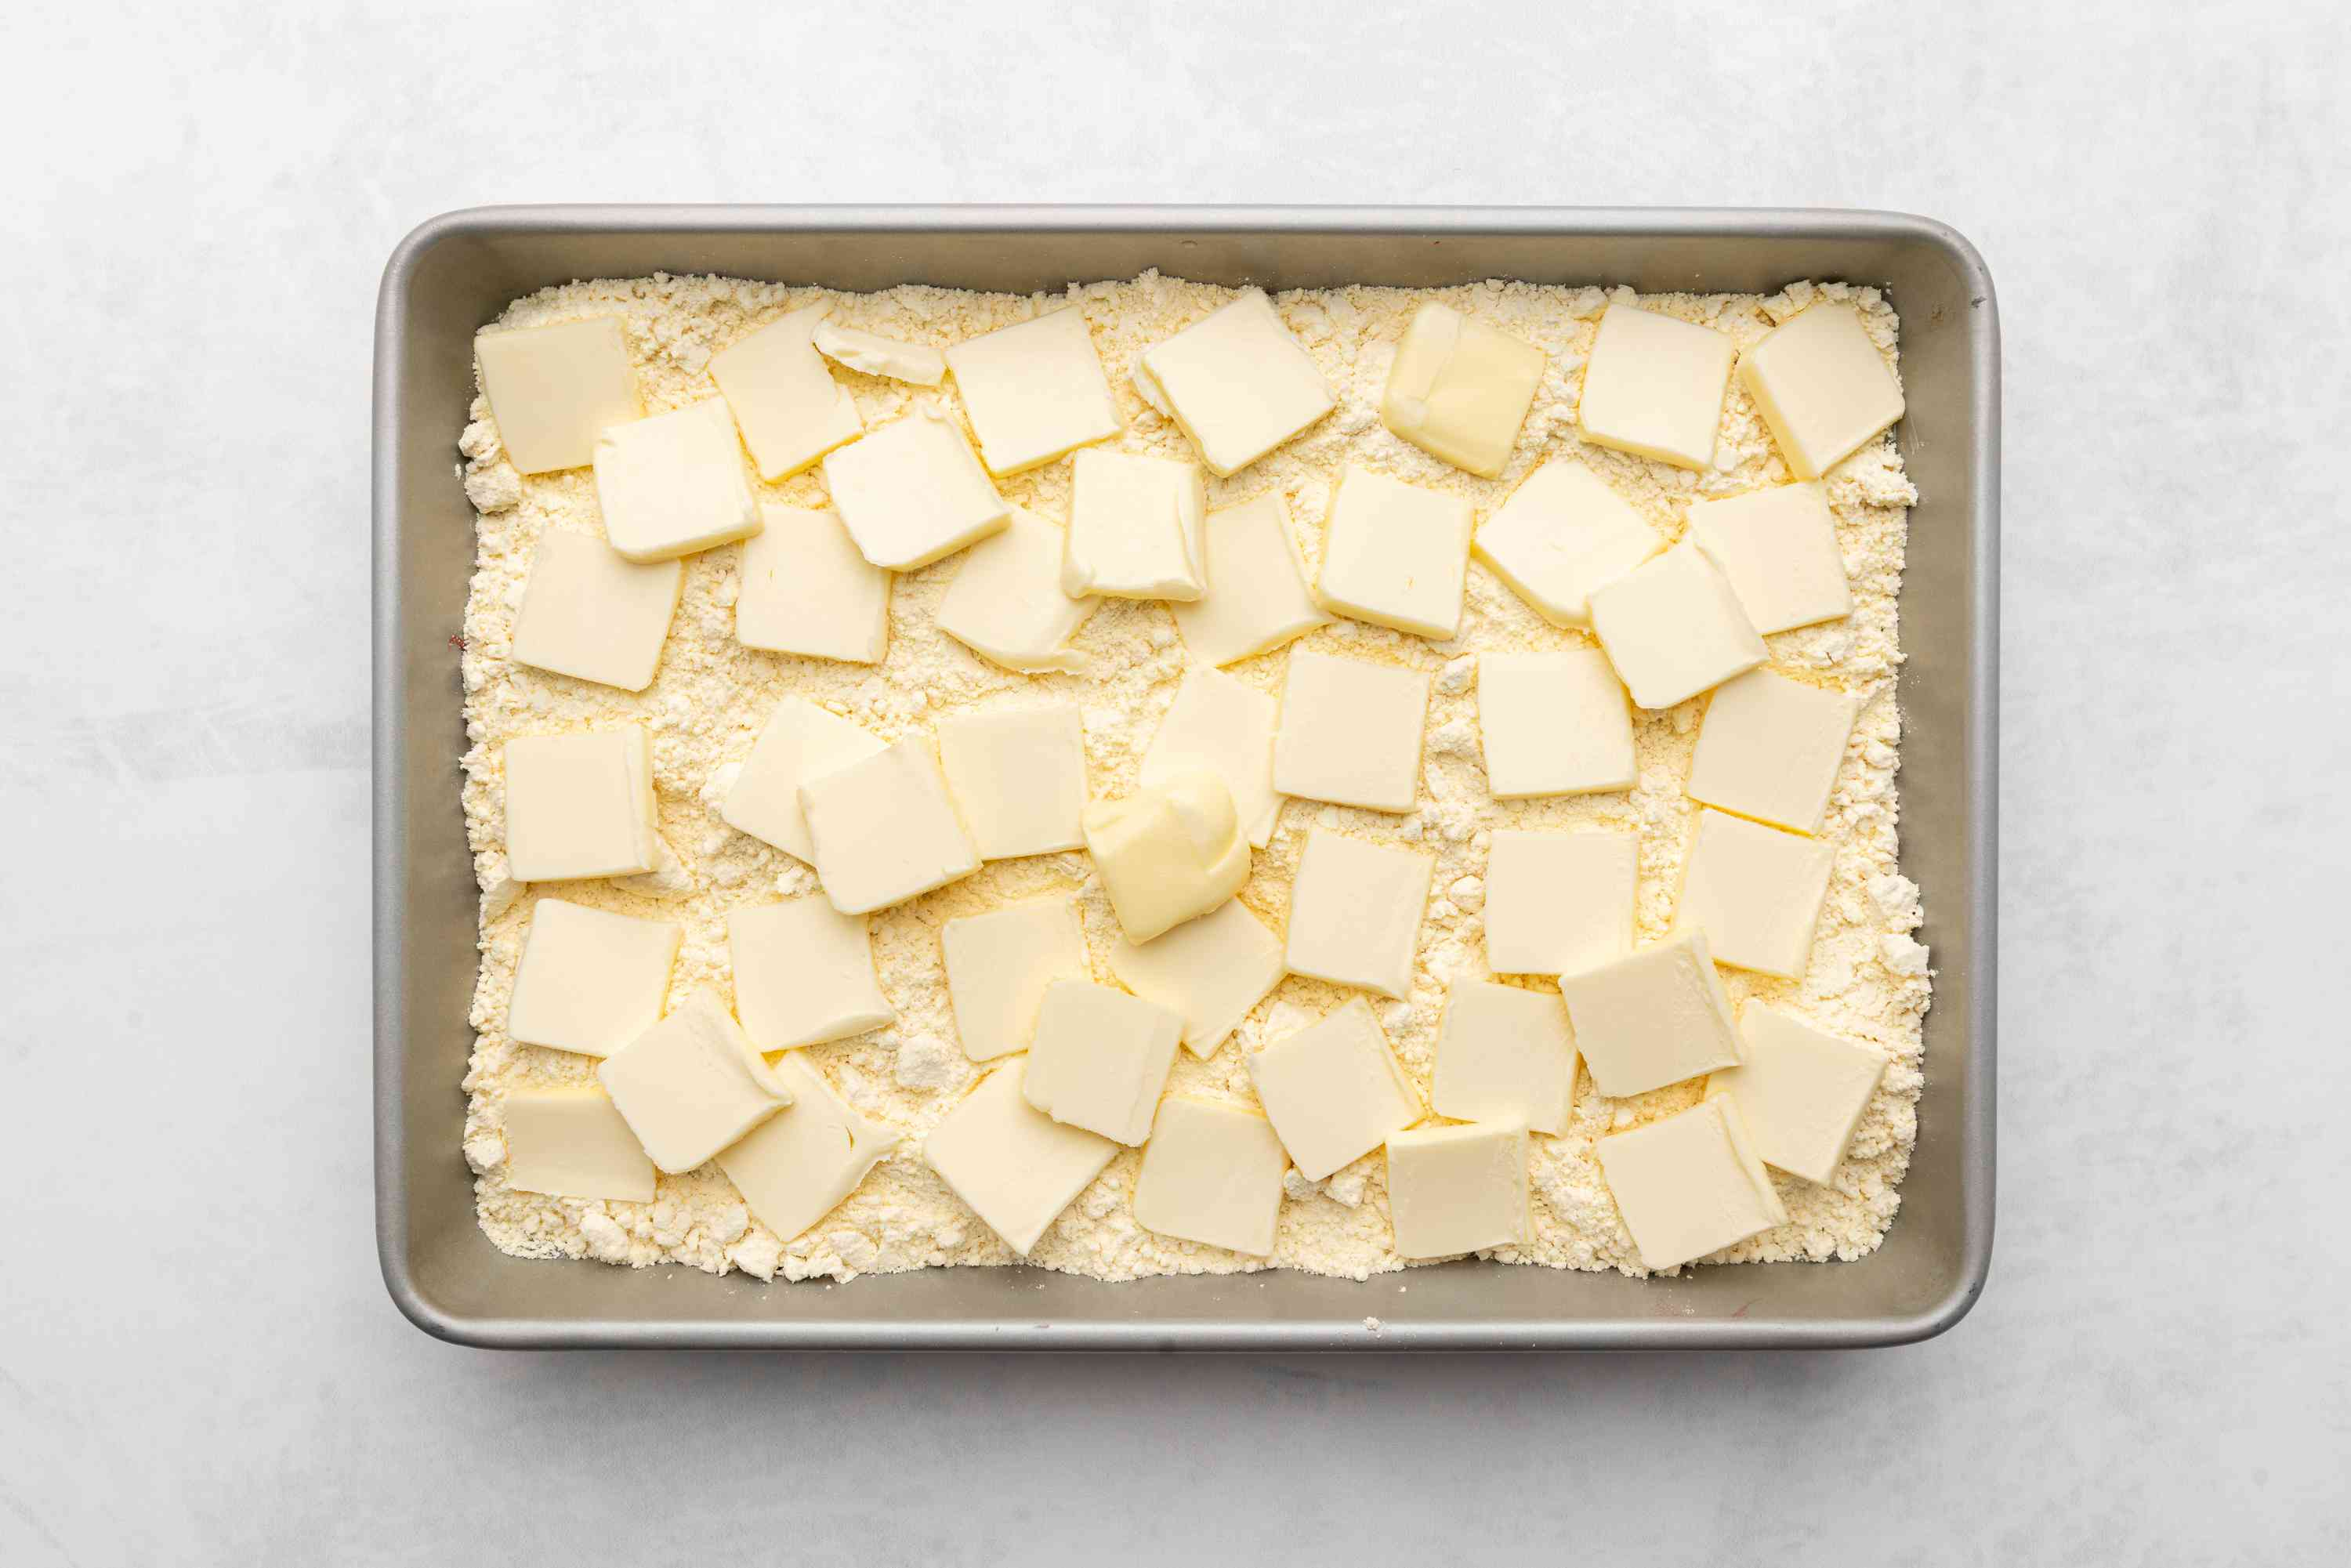 butter pieces of on top of the cake mix in a baking dish